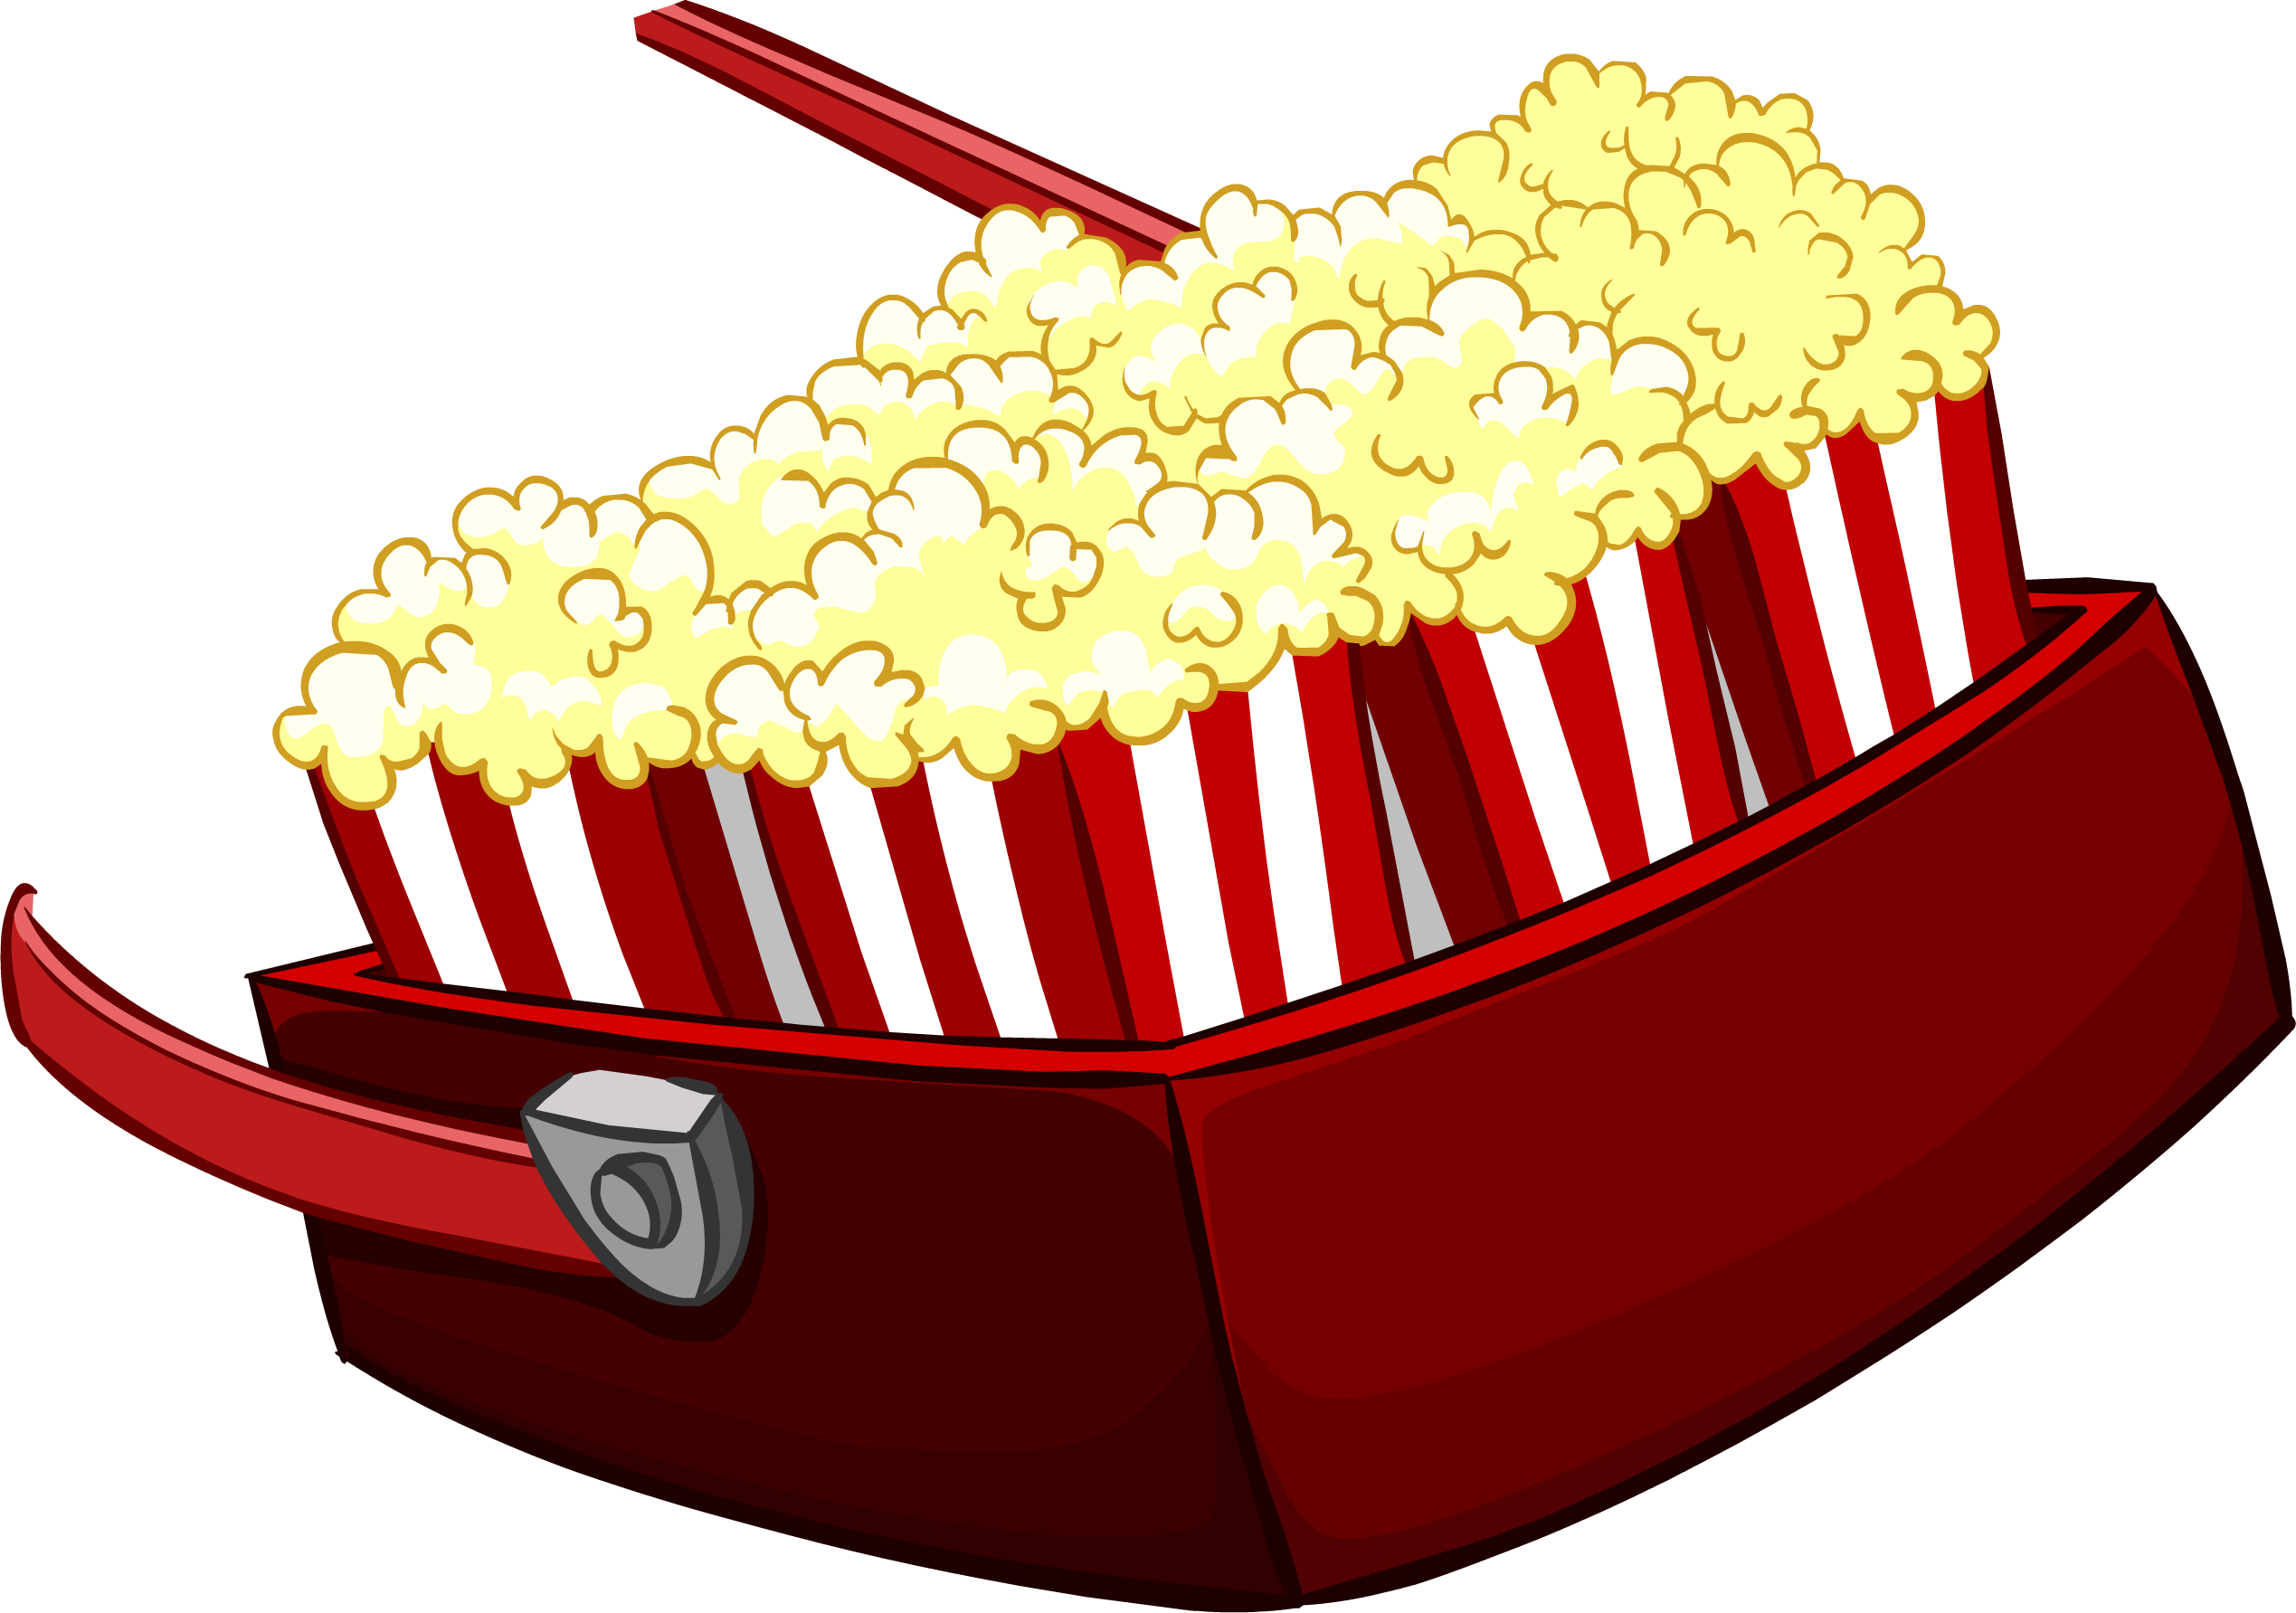 Clipart tv and popcorn. Image tray february png